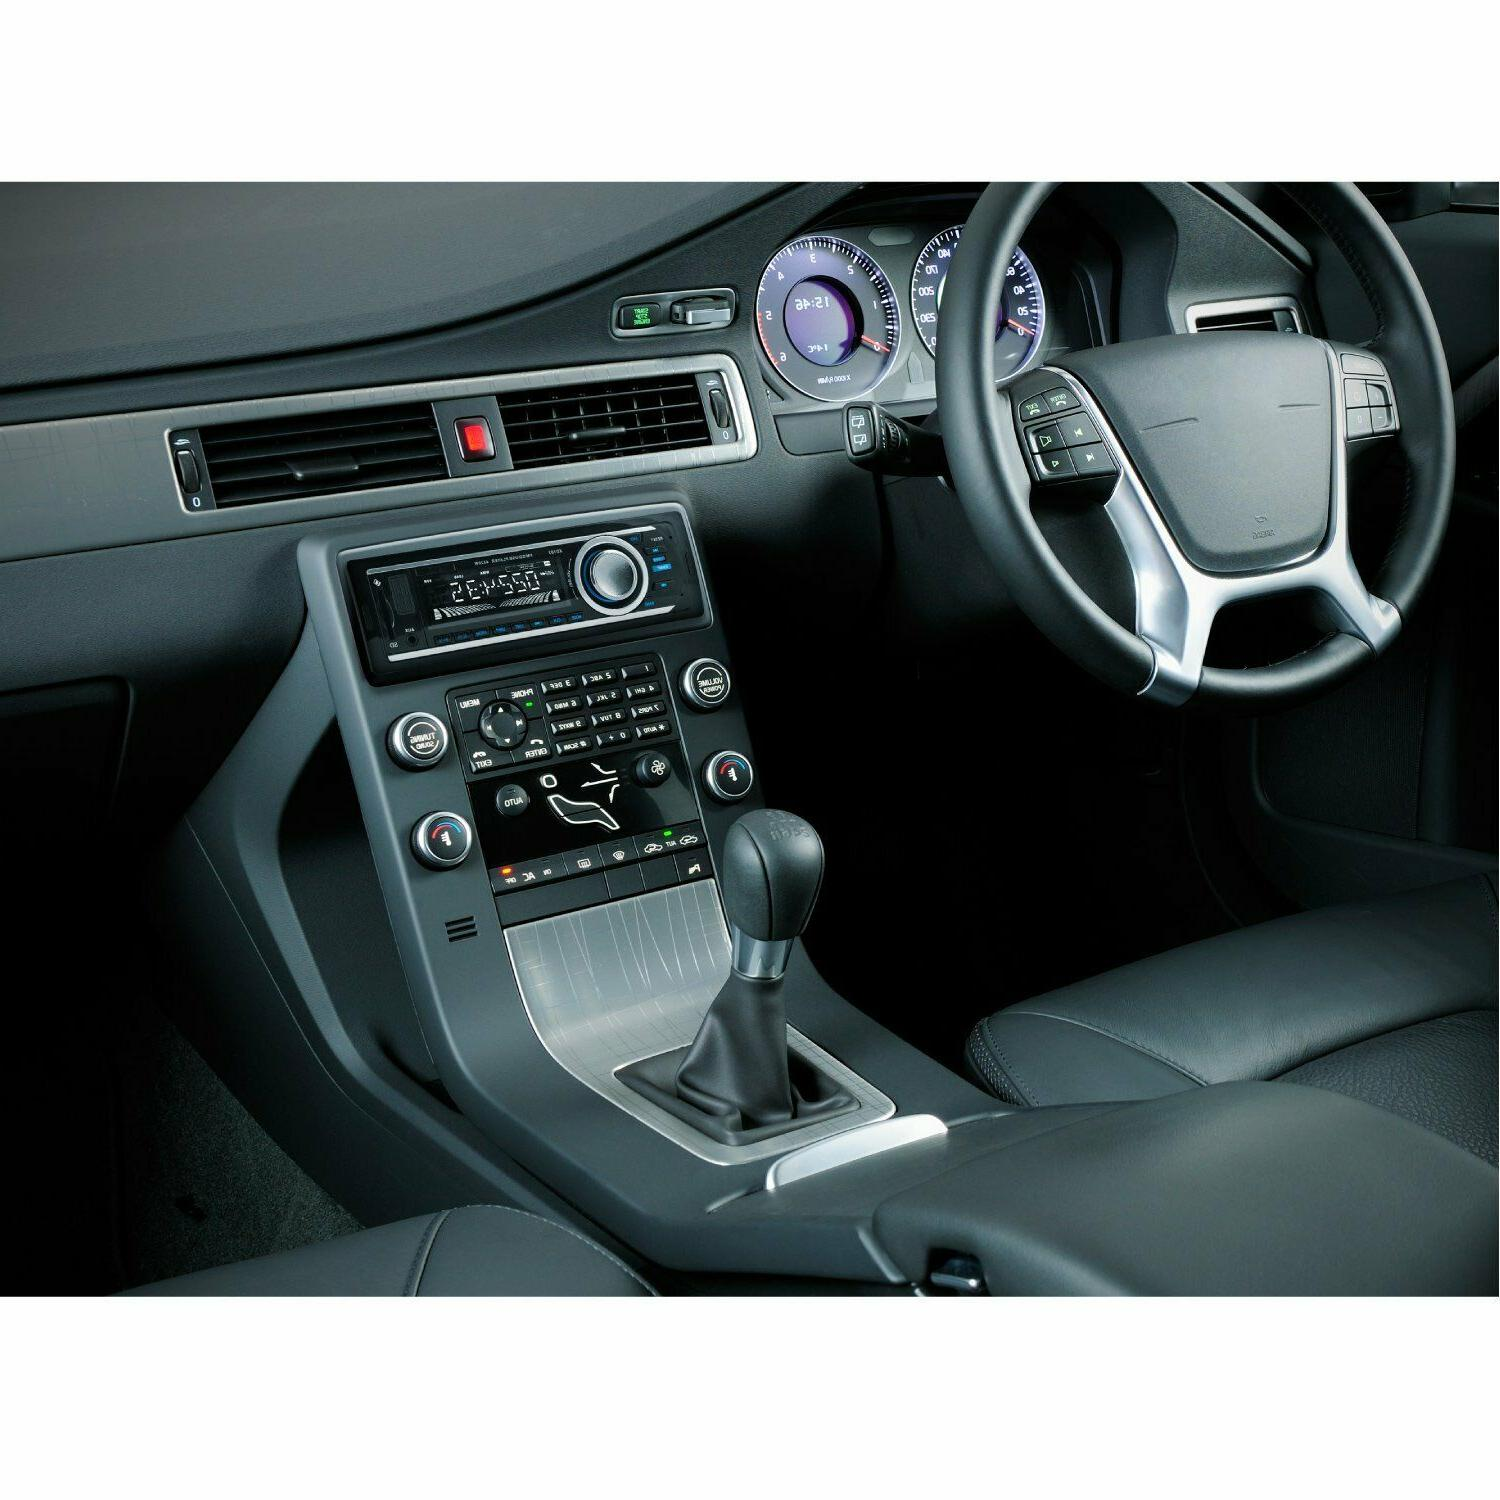 FM and MP3 Car Stereo Receiver USB Port SD Card